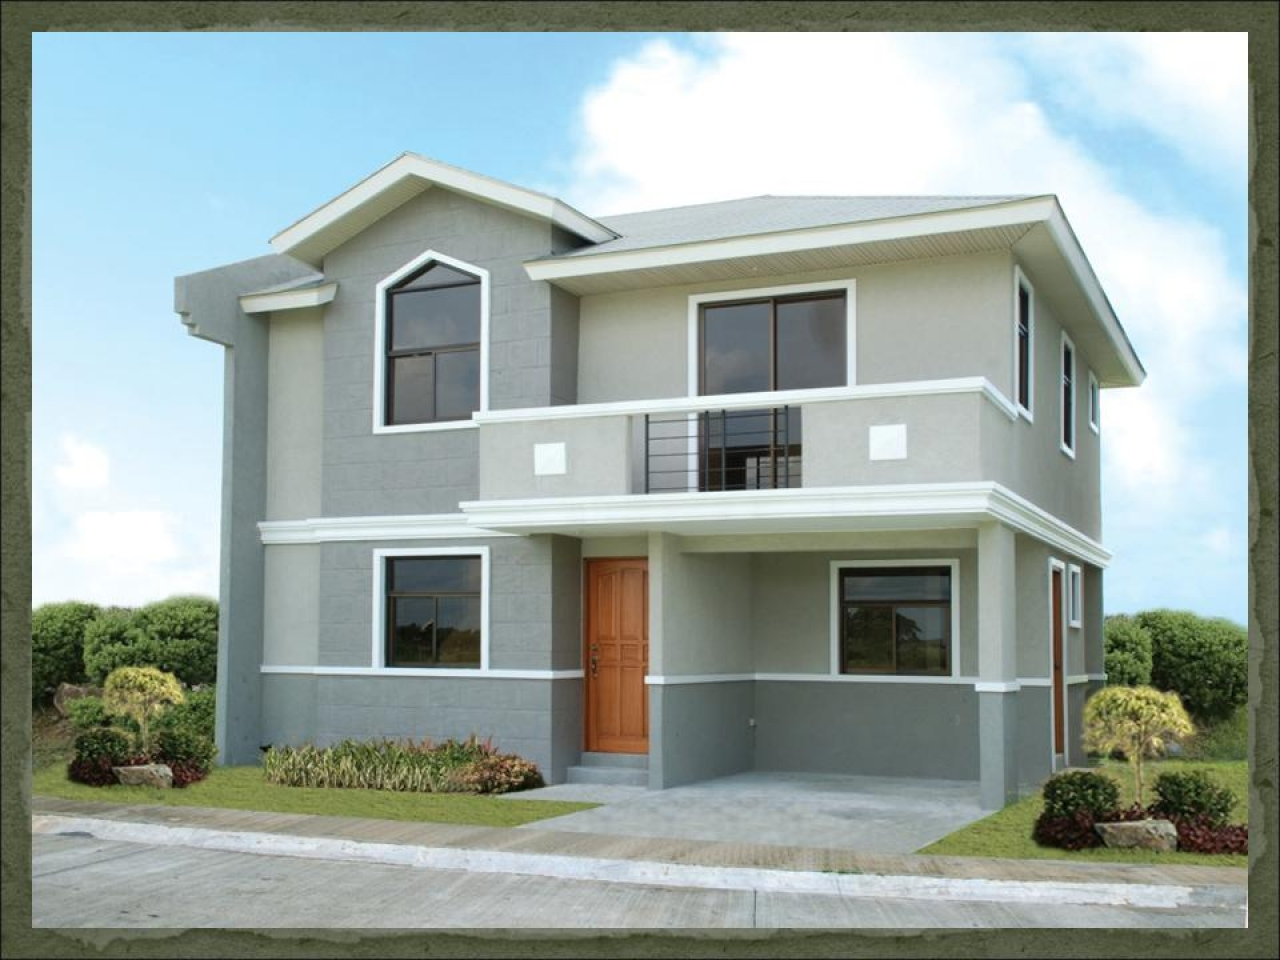 Breathtaking house design small house plan small house design plan philippines simple houses to for Small modern house designs and floor plans